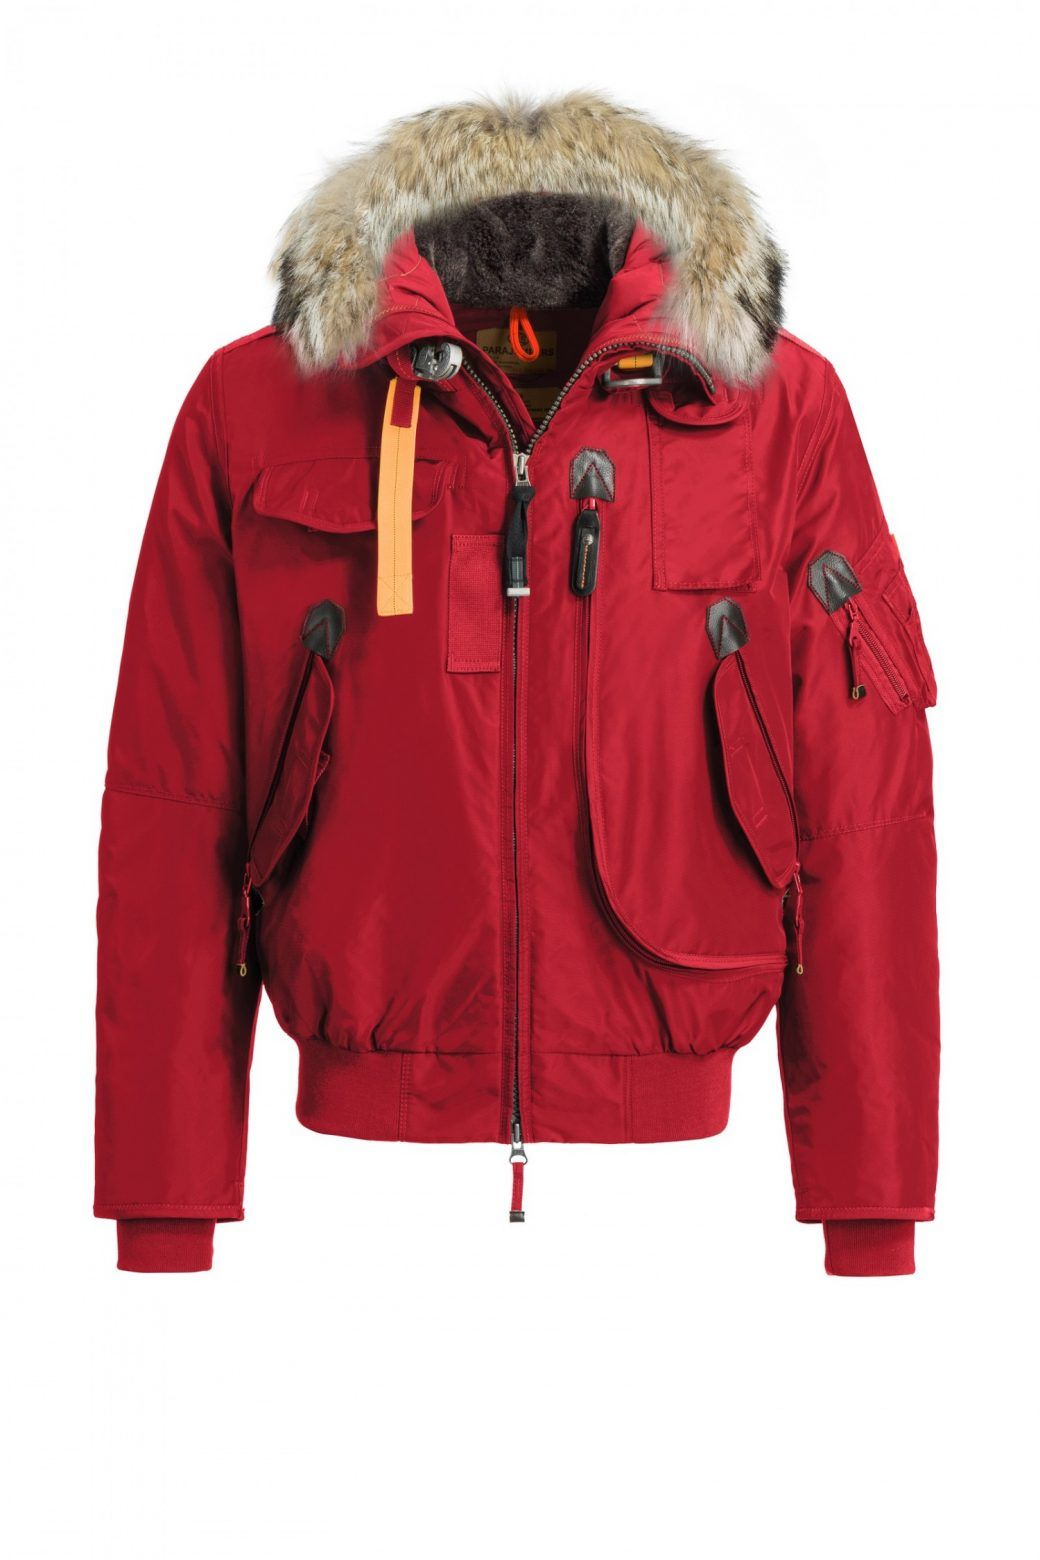 parajumpers outlet danmark